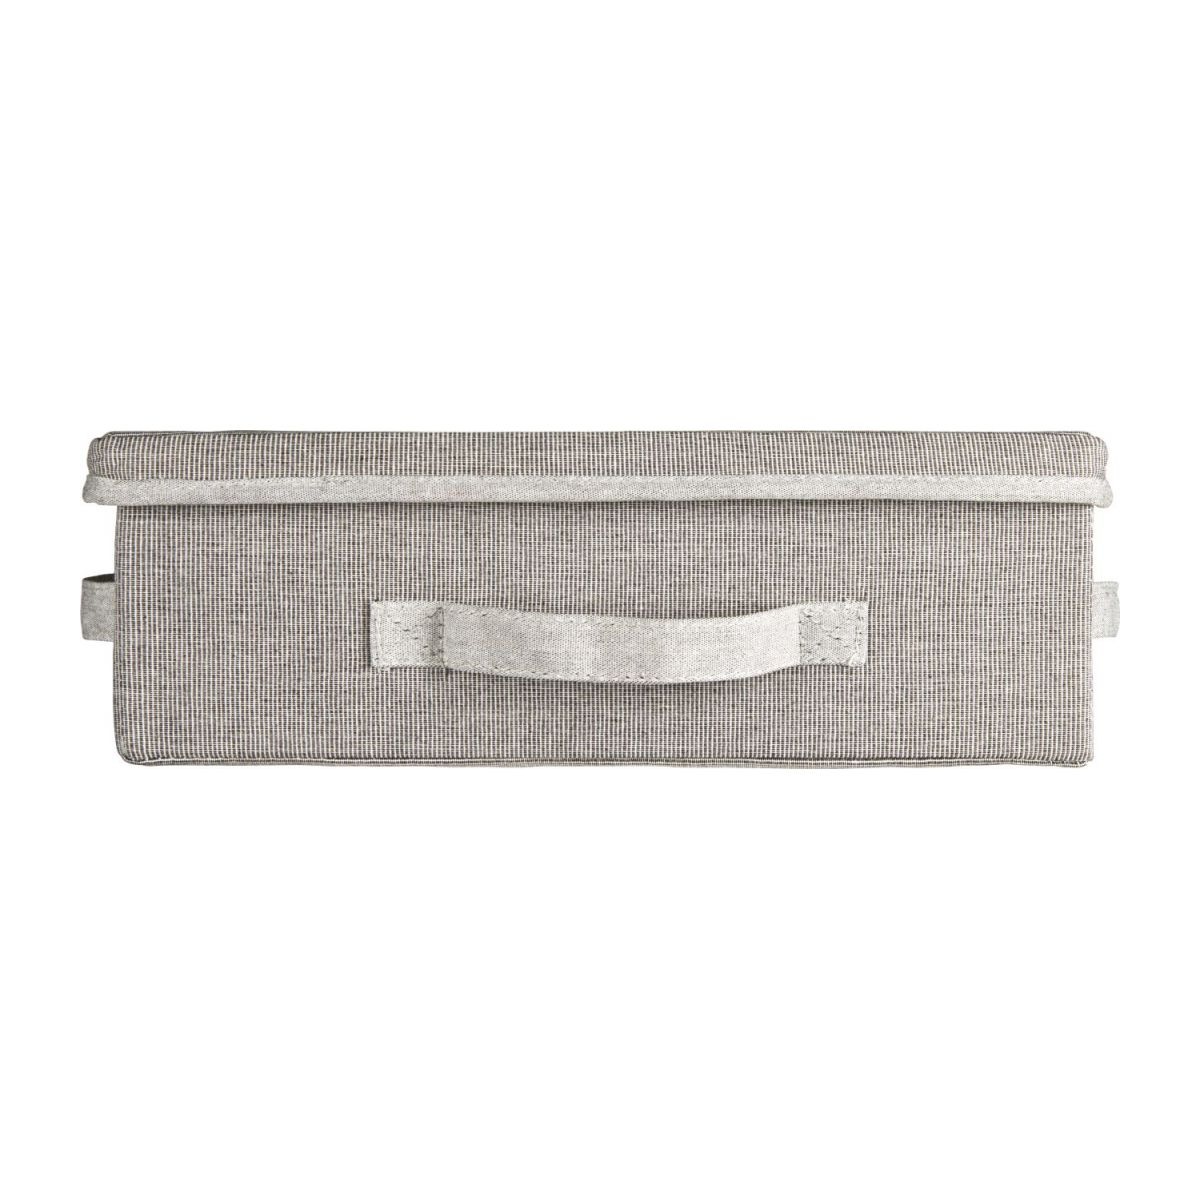 Small Storage basket, grey fabric and bamboo n°3